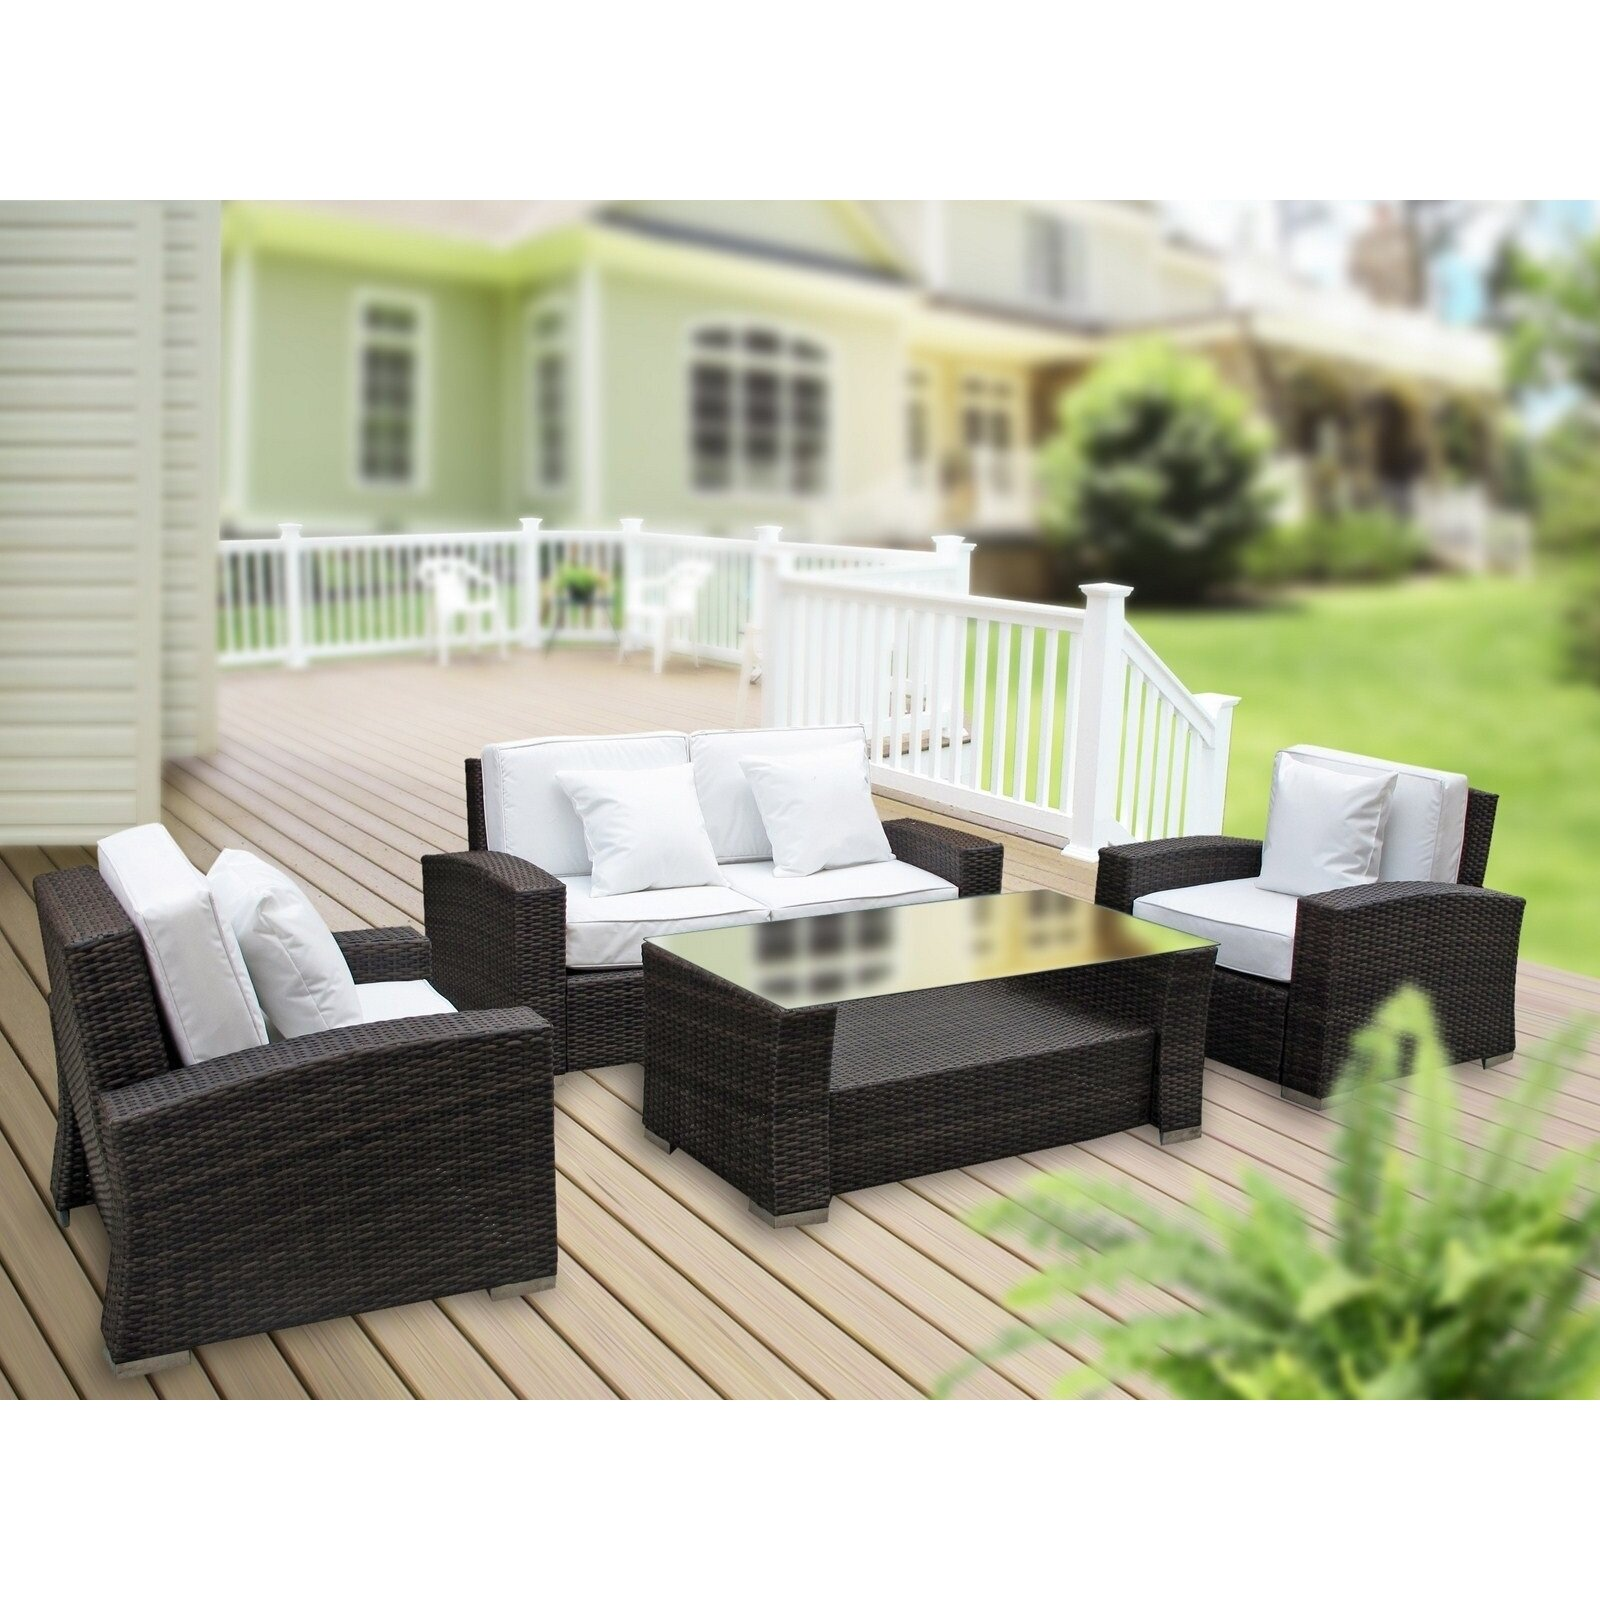 Modway Outdoor Furniture Simplylushliving